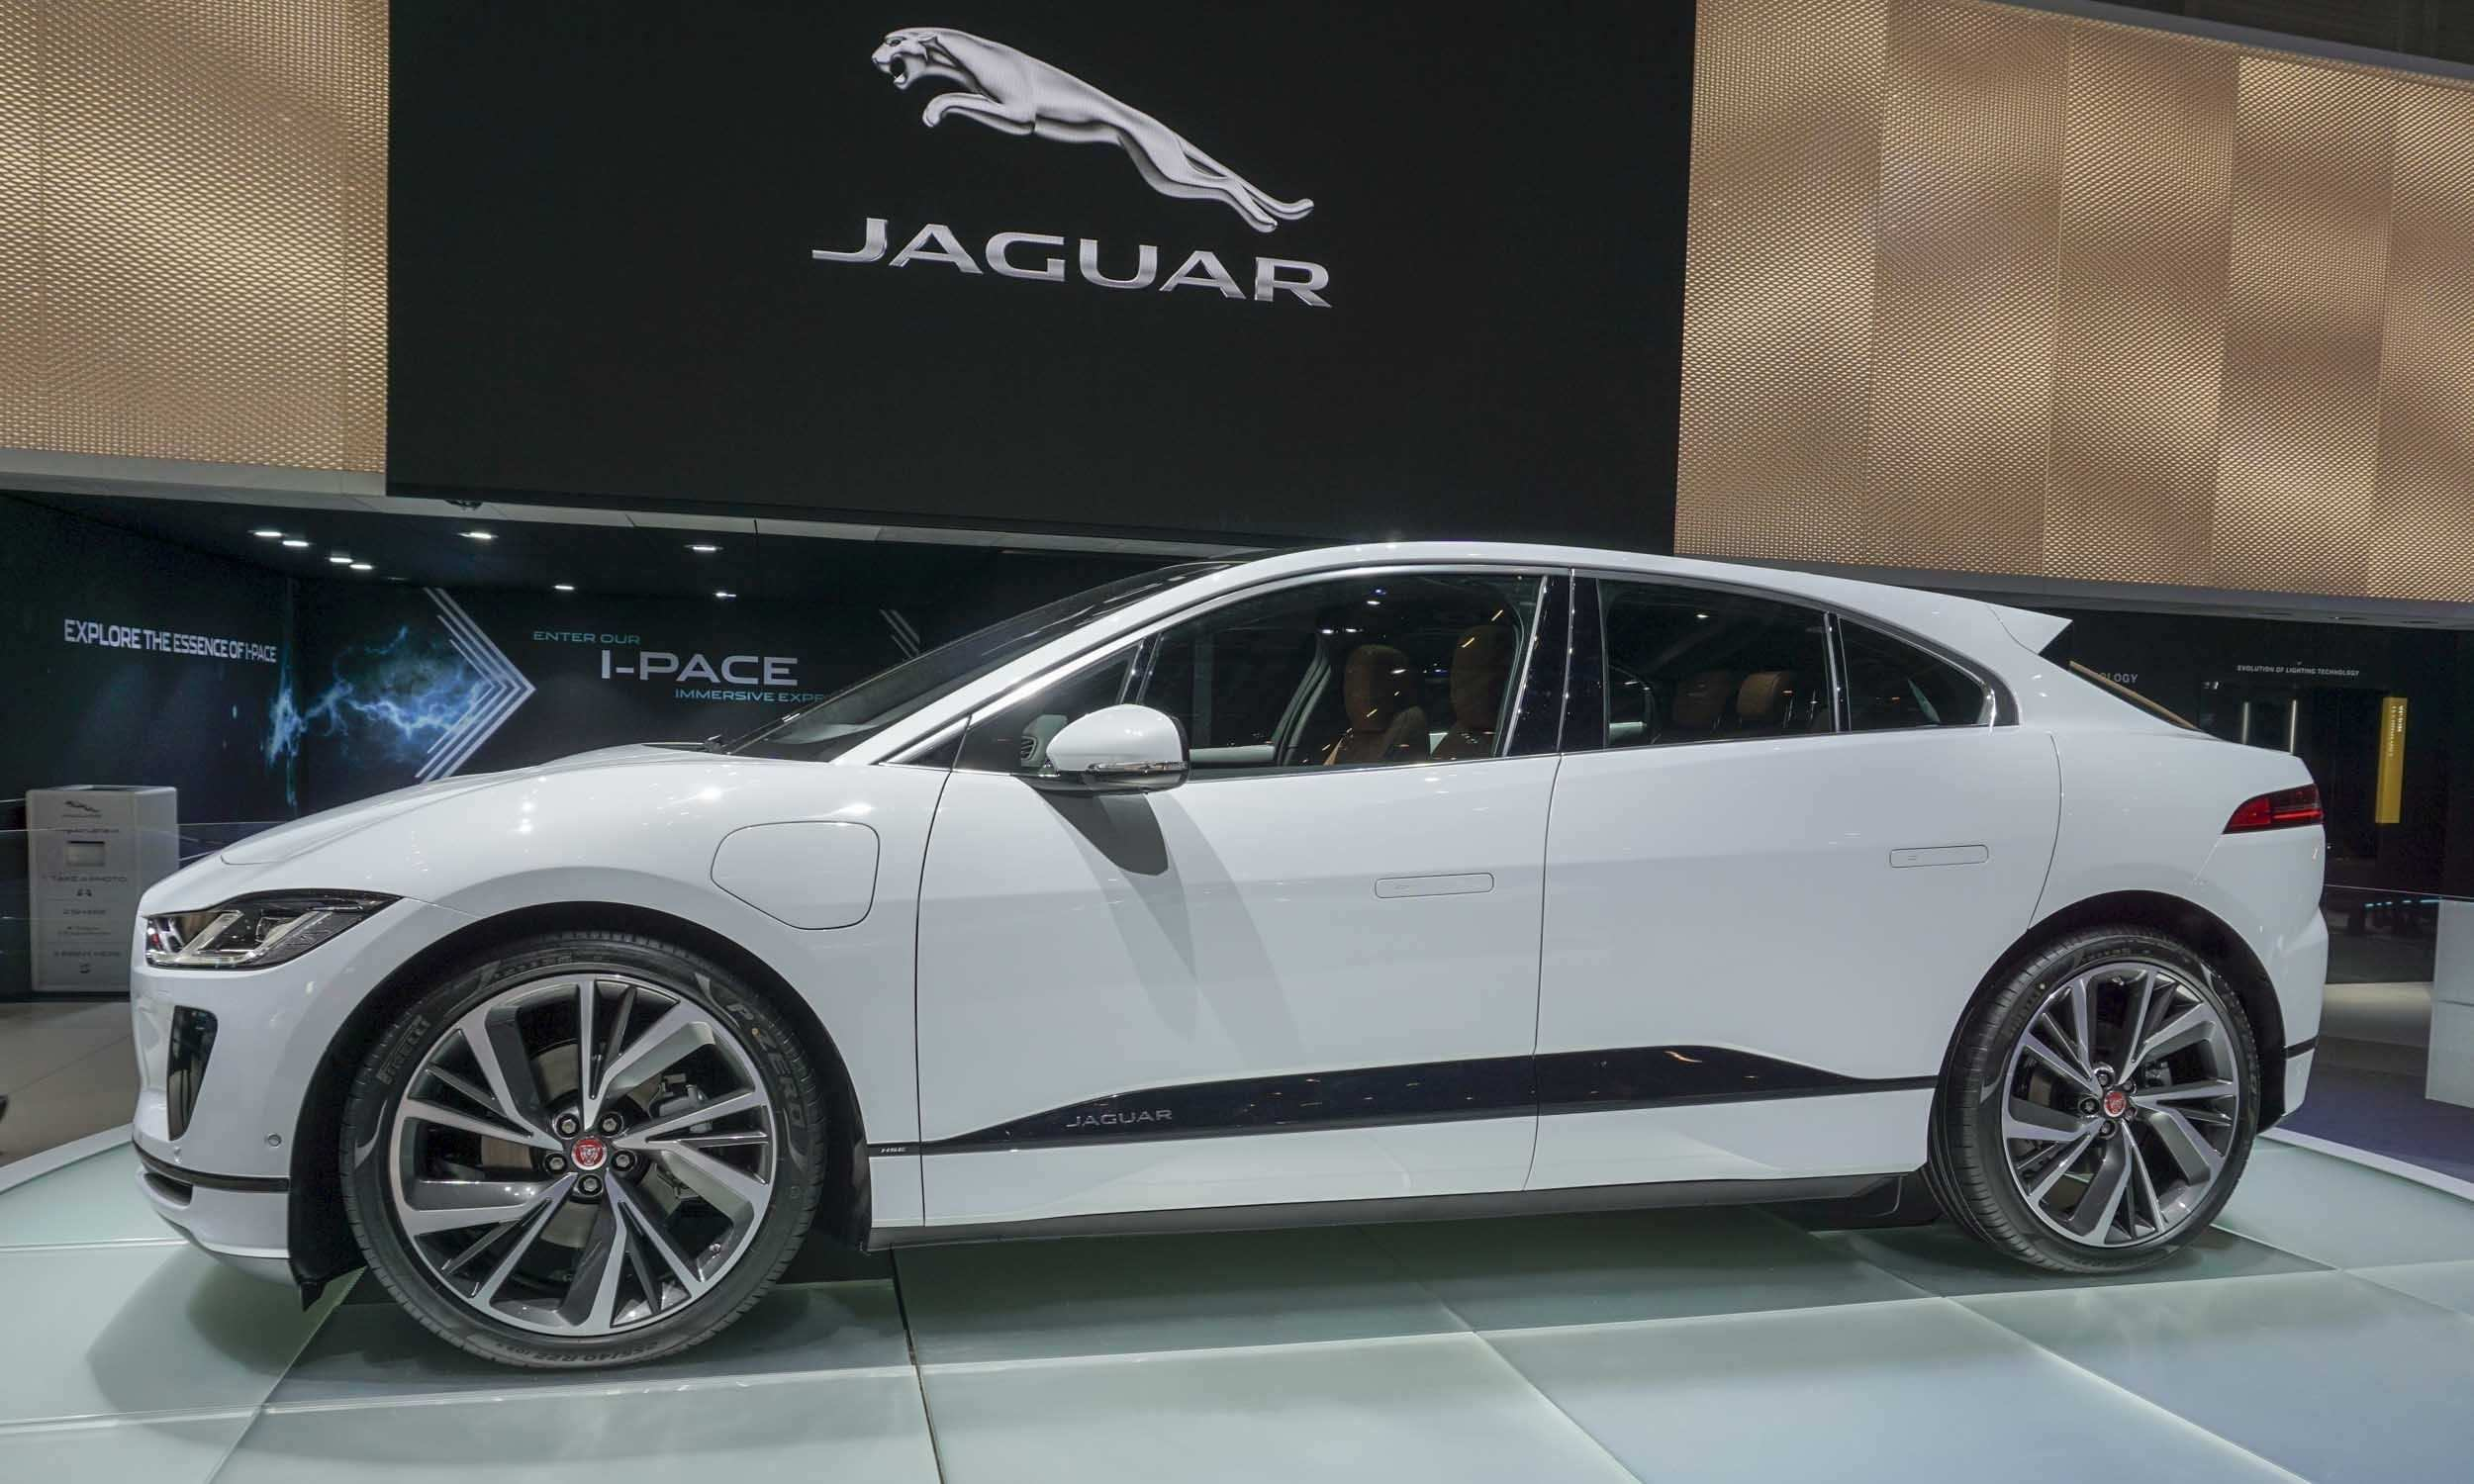 48 All New 2019 Jaguar I Pace Release Date Pictures for 2019 Jaguar I Pace Release Date